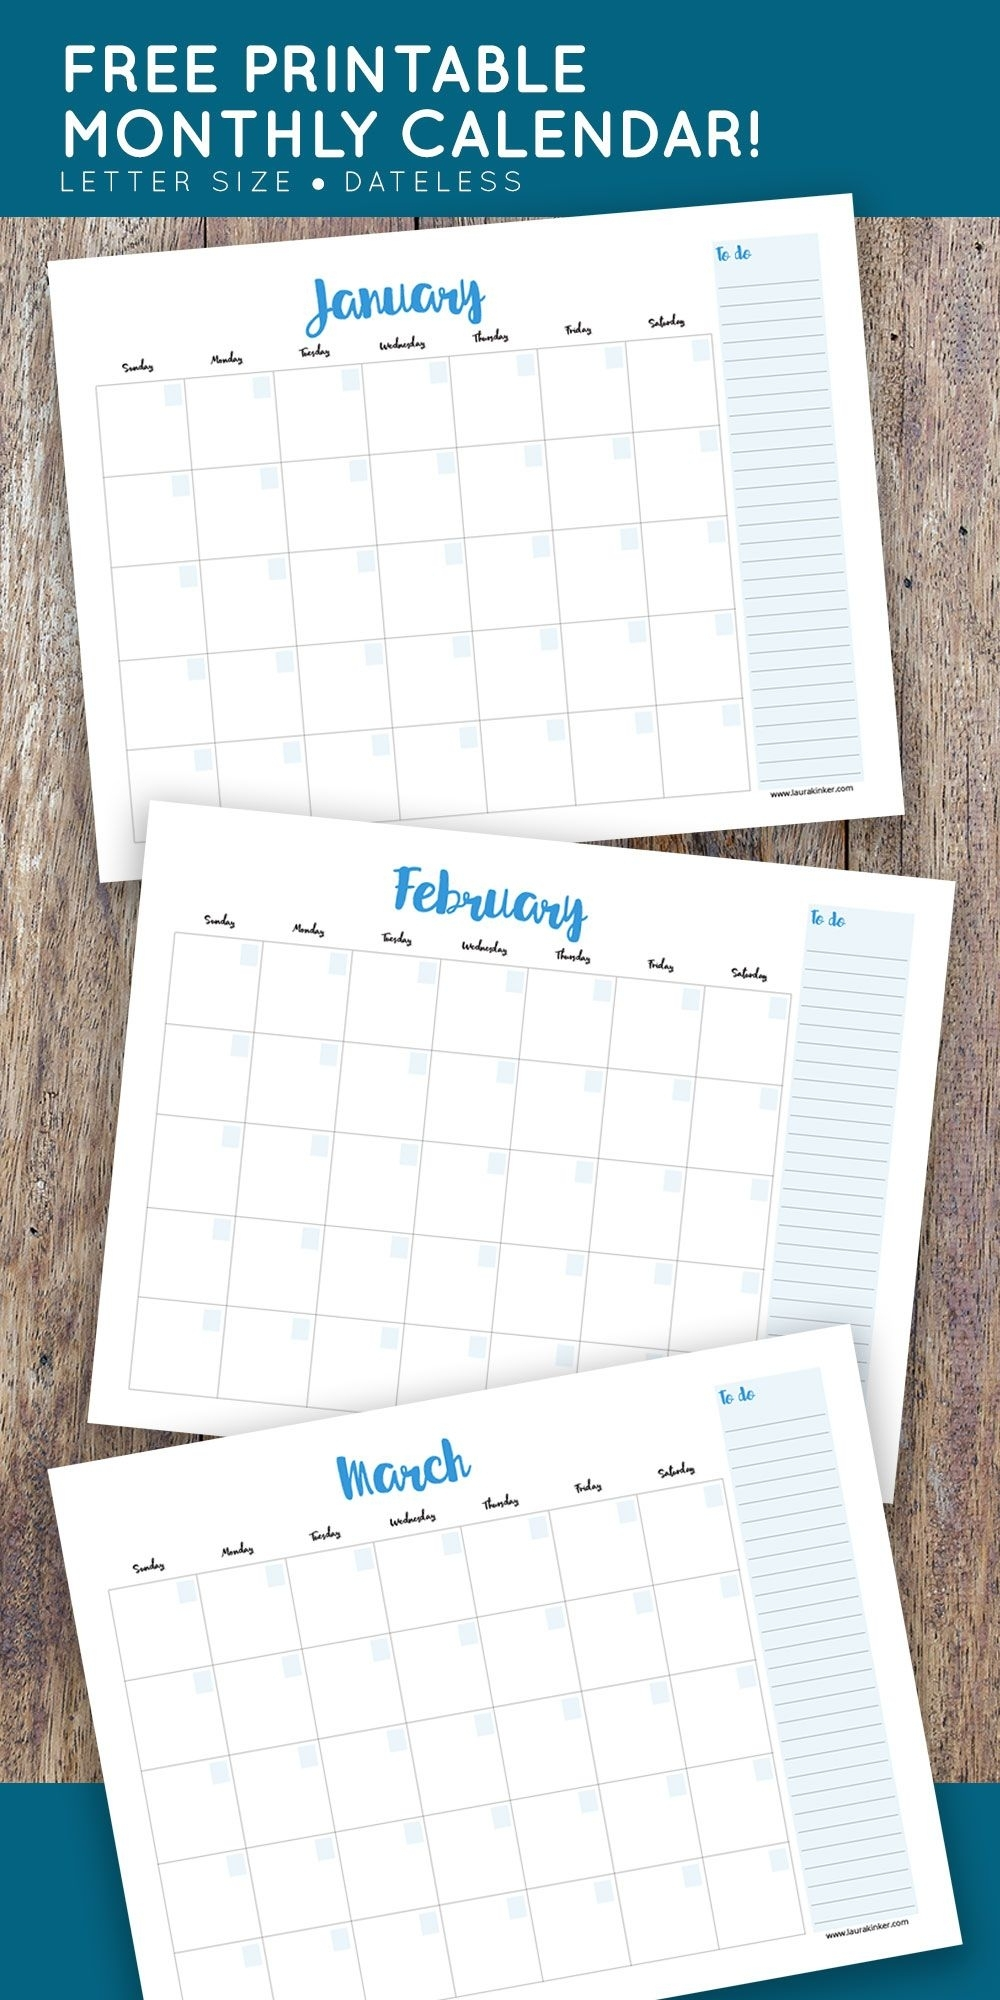 Free Printable Monthly Calendar - No Dates So You Can Use